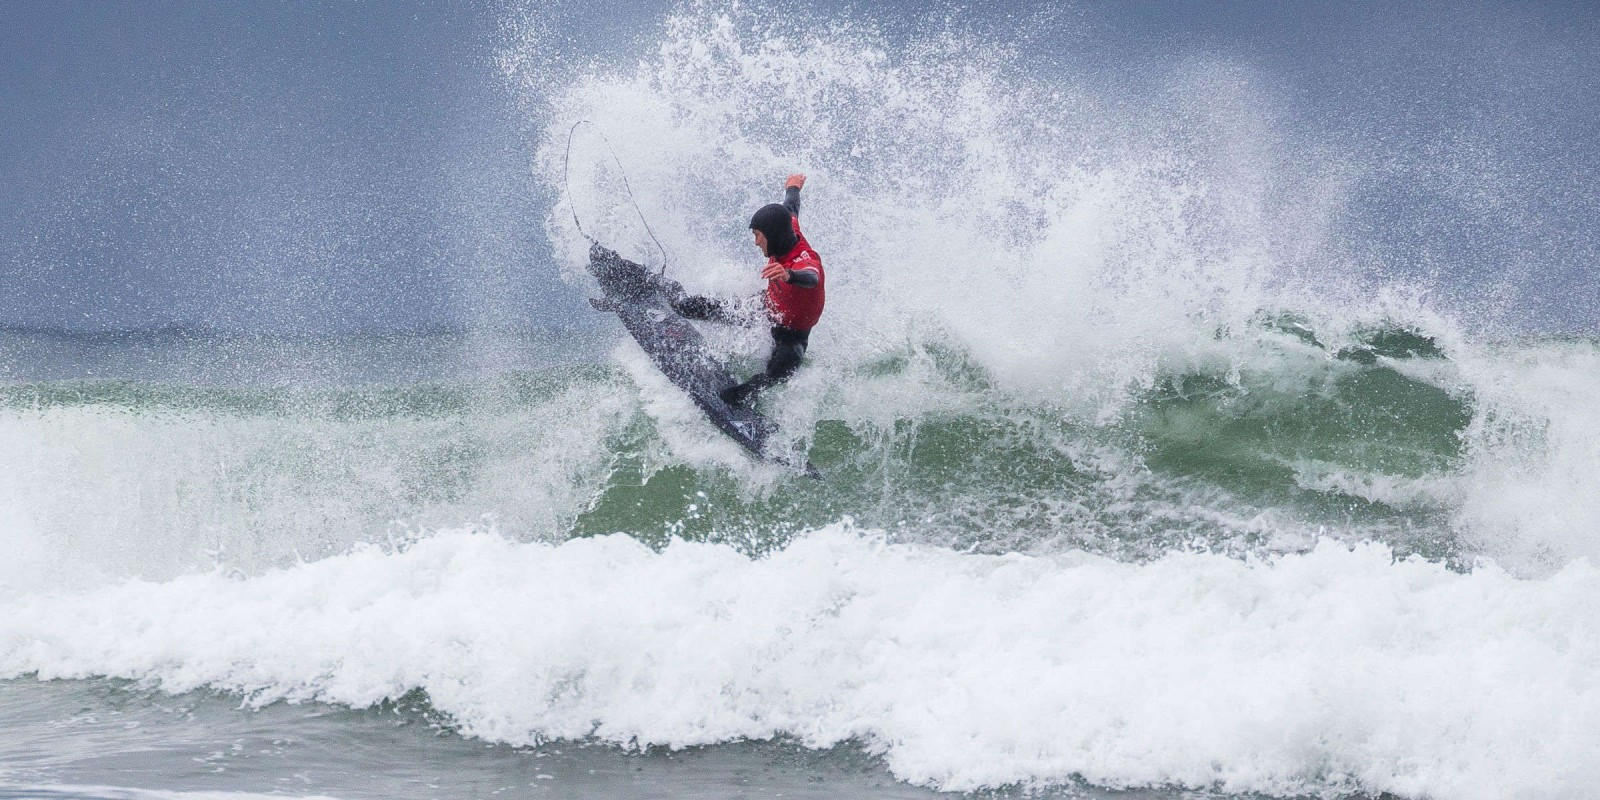 Peter Devries wins 9th Canadian Surf National title